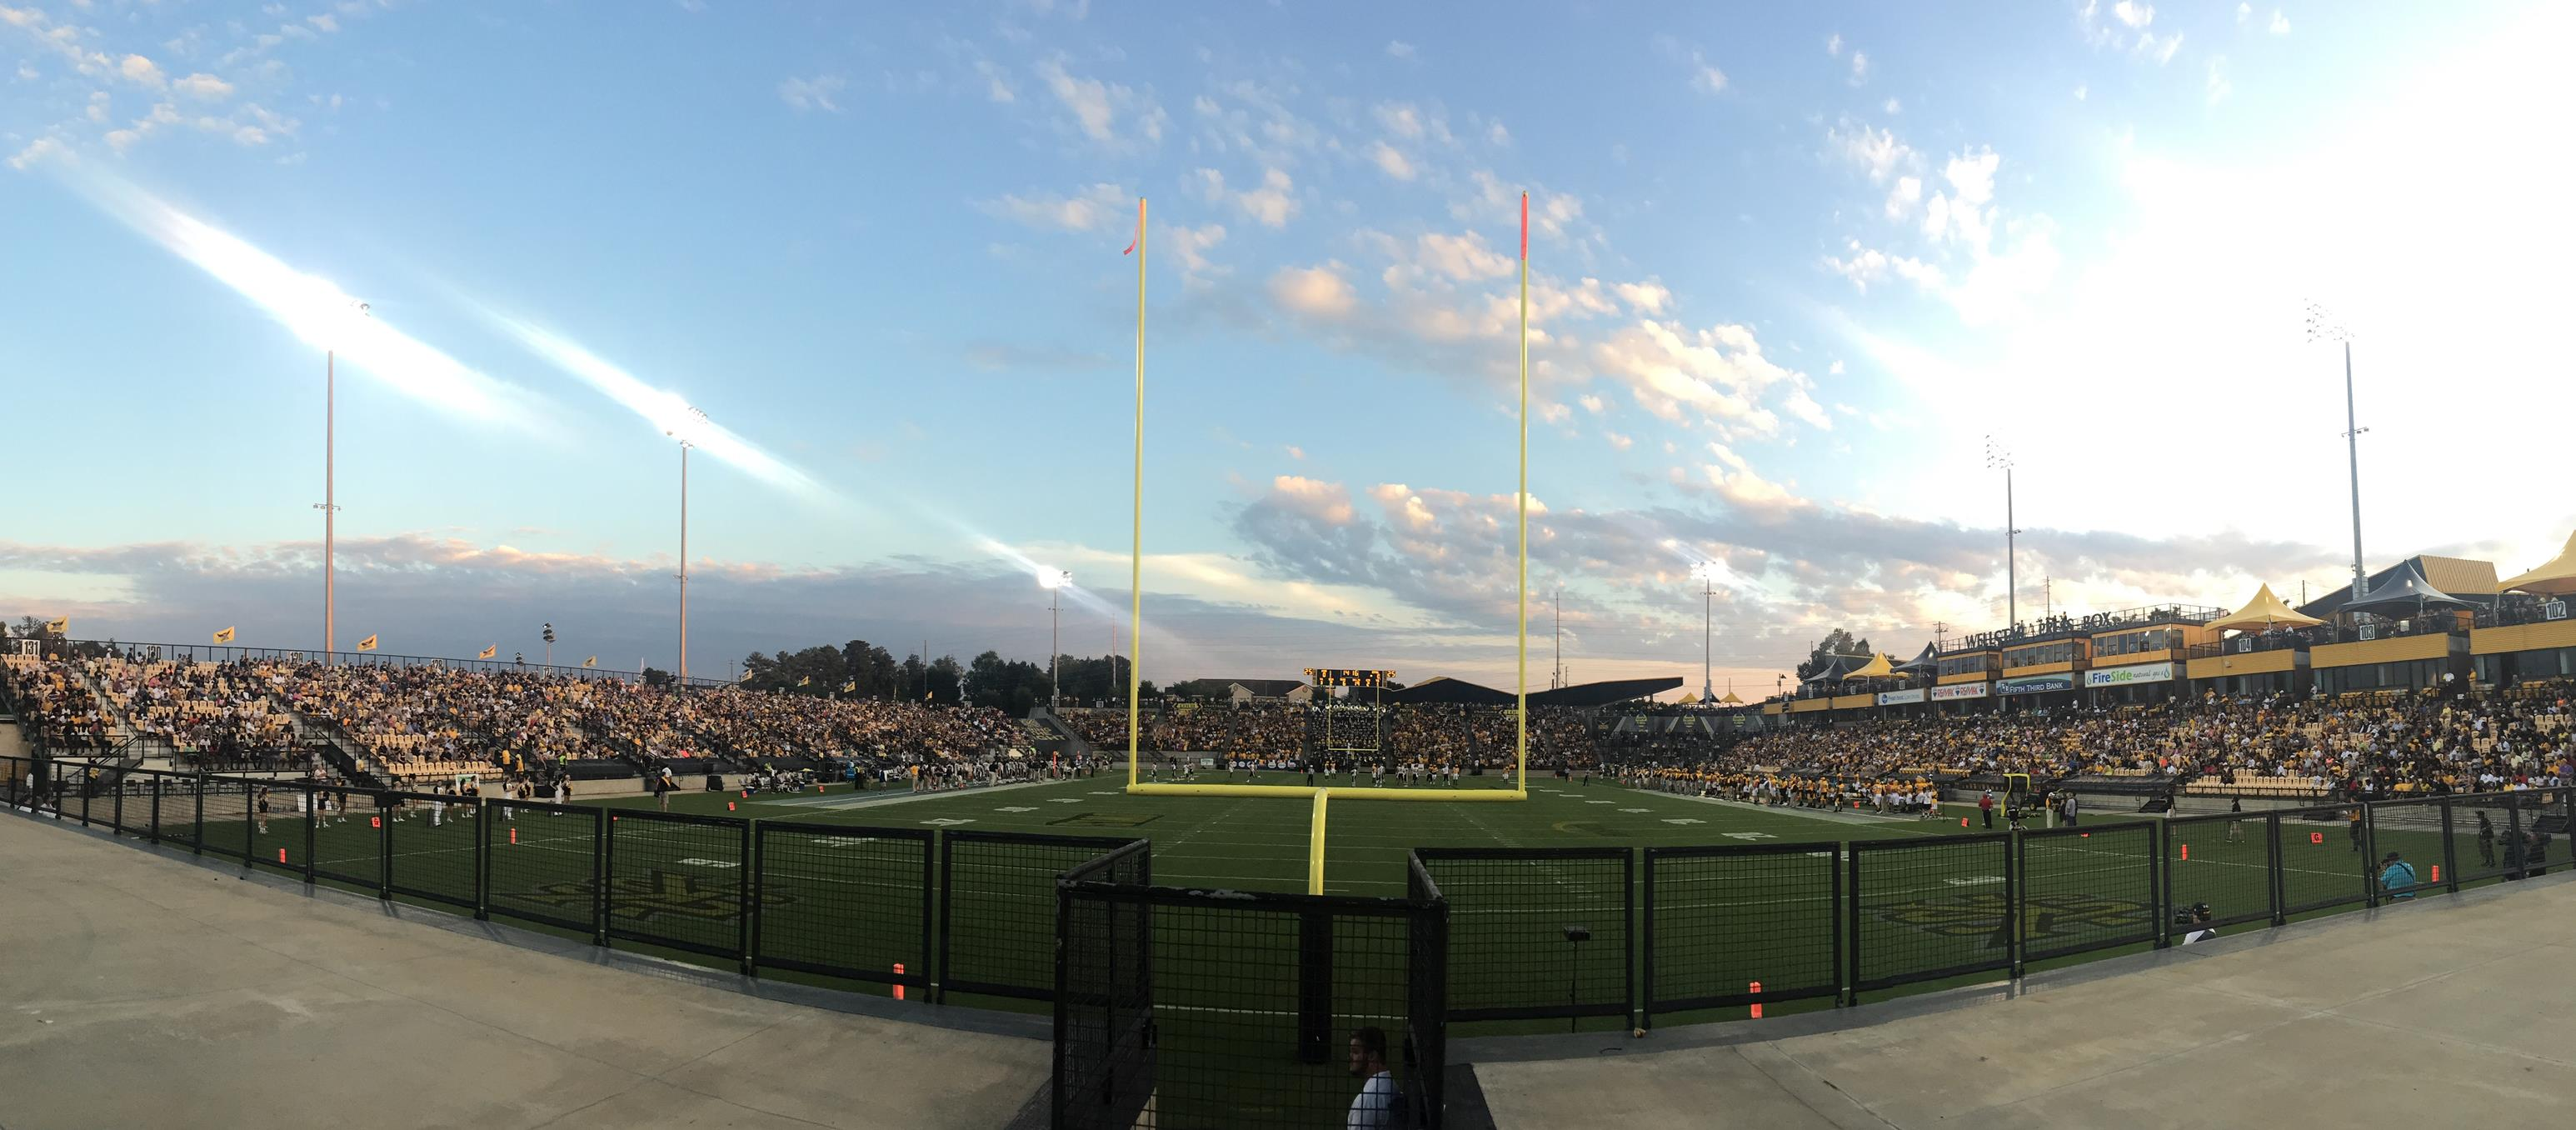 """""Fifth Third Bank Stadium at Kennesaw State University"